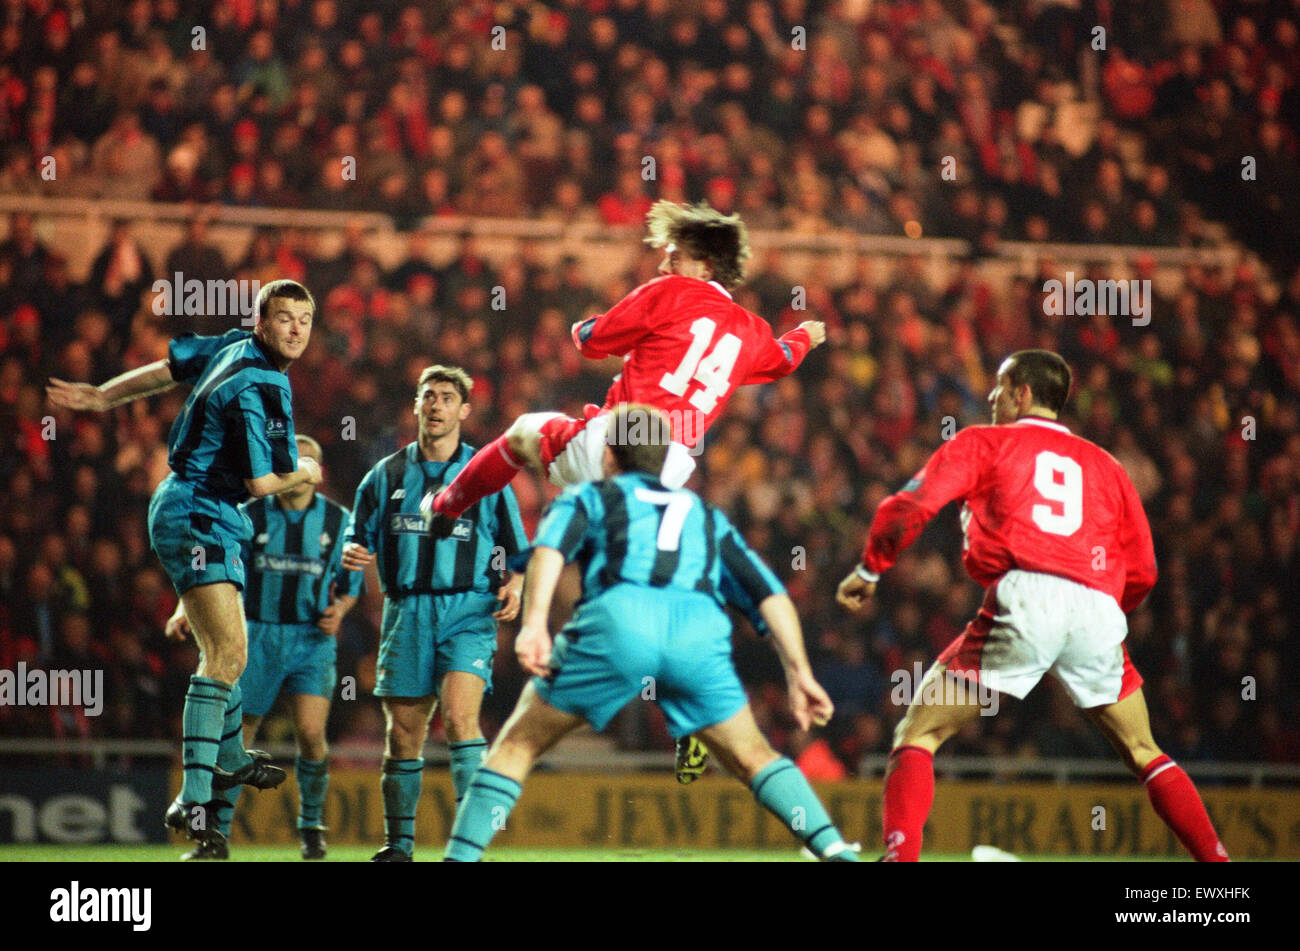 Divison One match, Middlesbrough 6 -0 Swindon Town held at the Riverside Stadium. 11th March 1998. - Stock Image